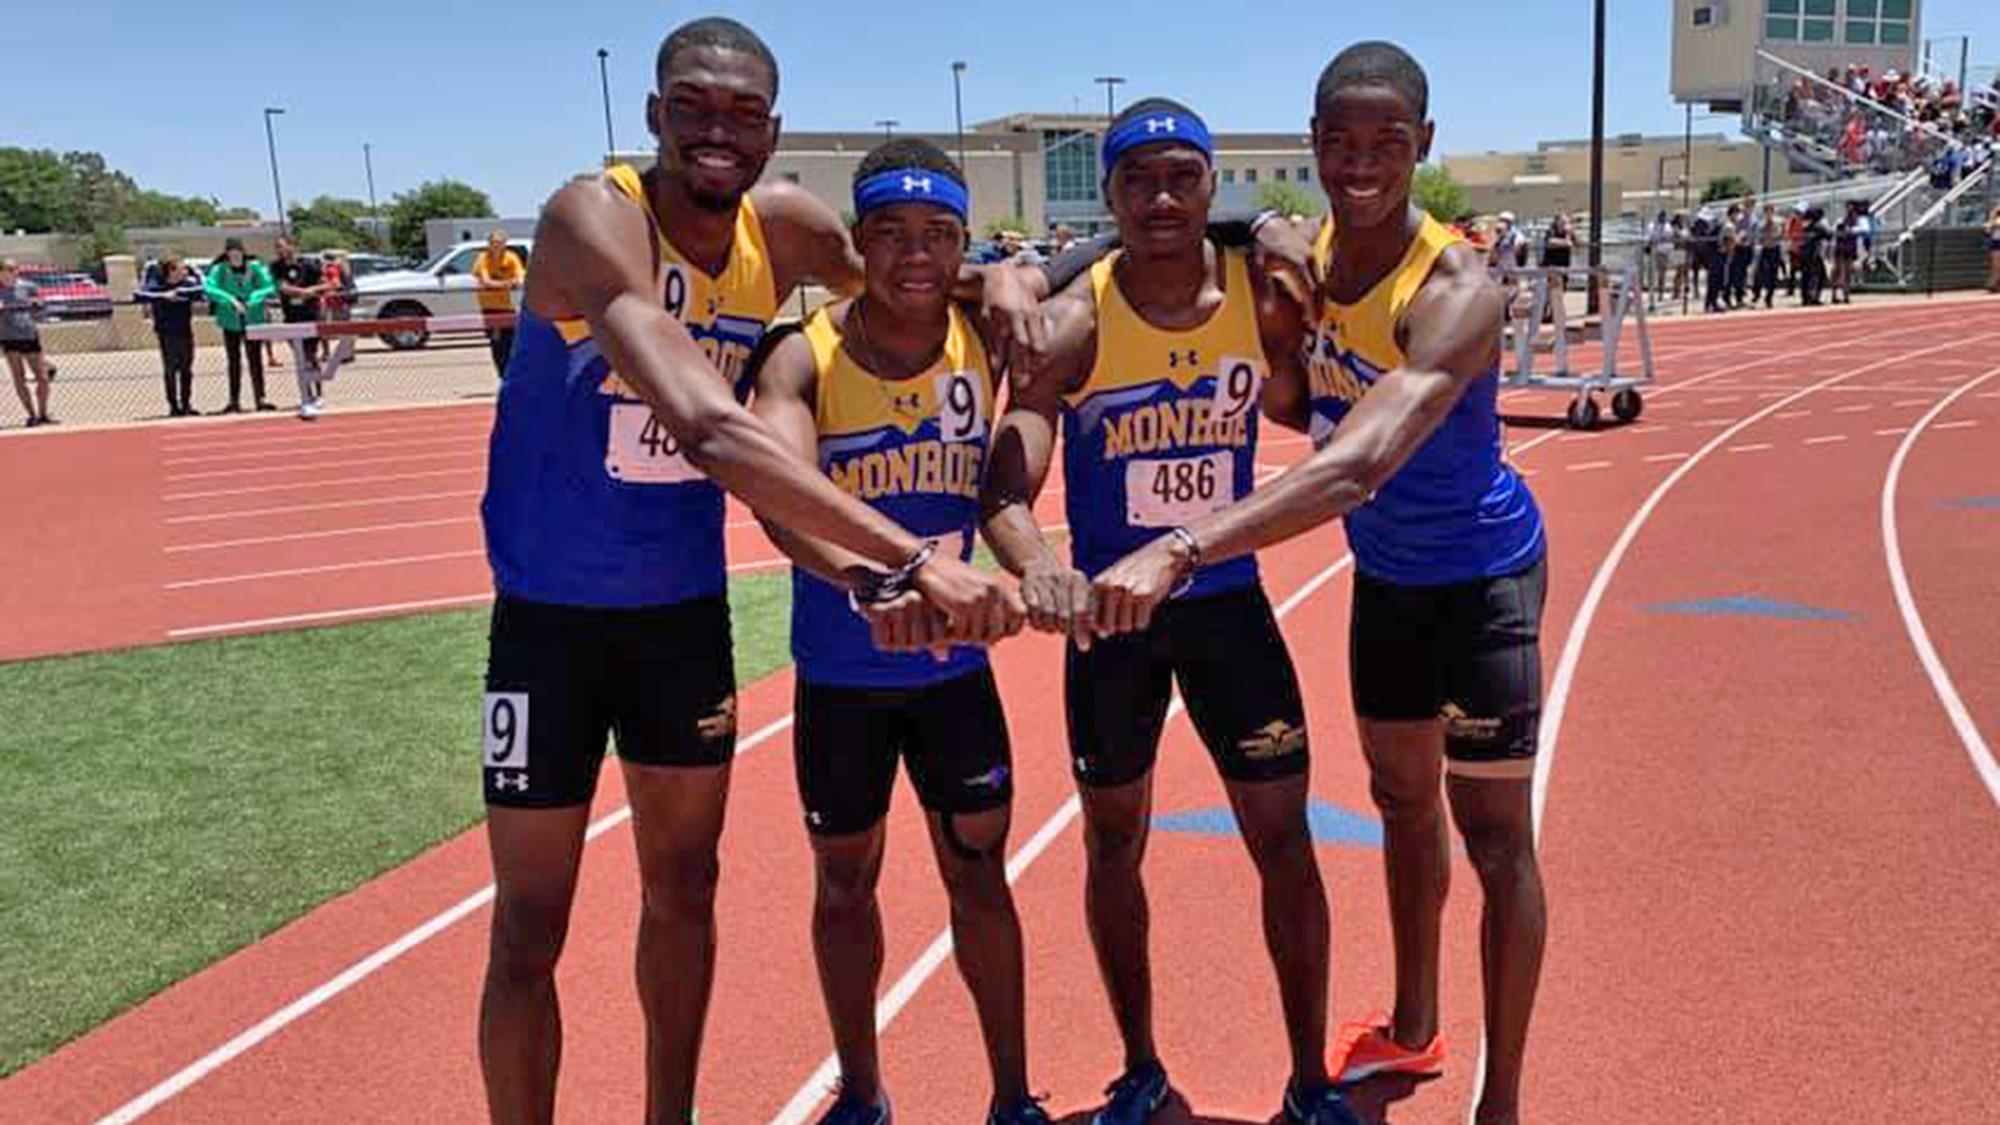 Monroe Men's Track and Field Wraps up NJCAA Outdoor Championships with Four  More Podium Finishes to Take 11th Overall - Monroe College Athletics